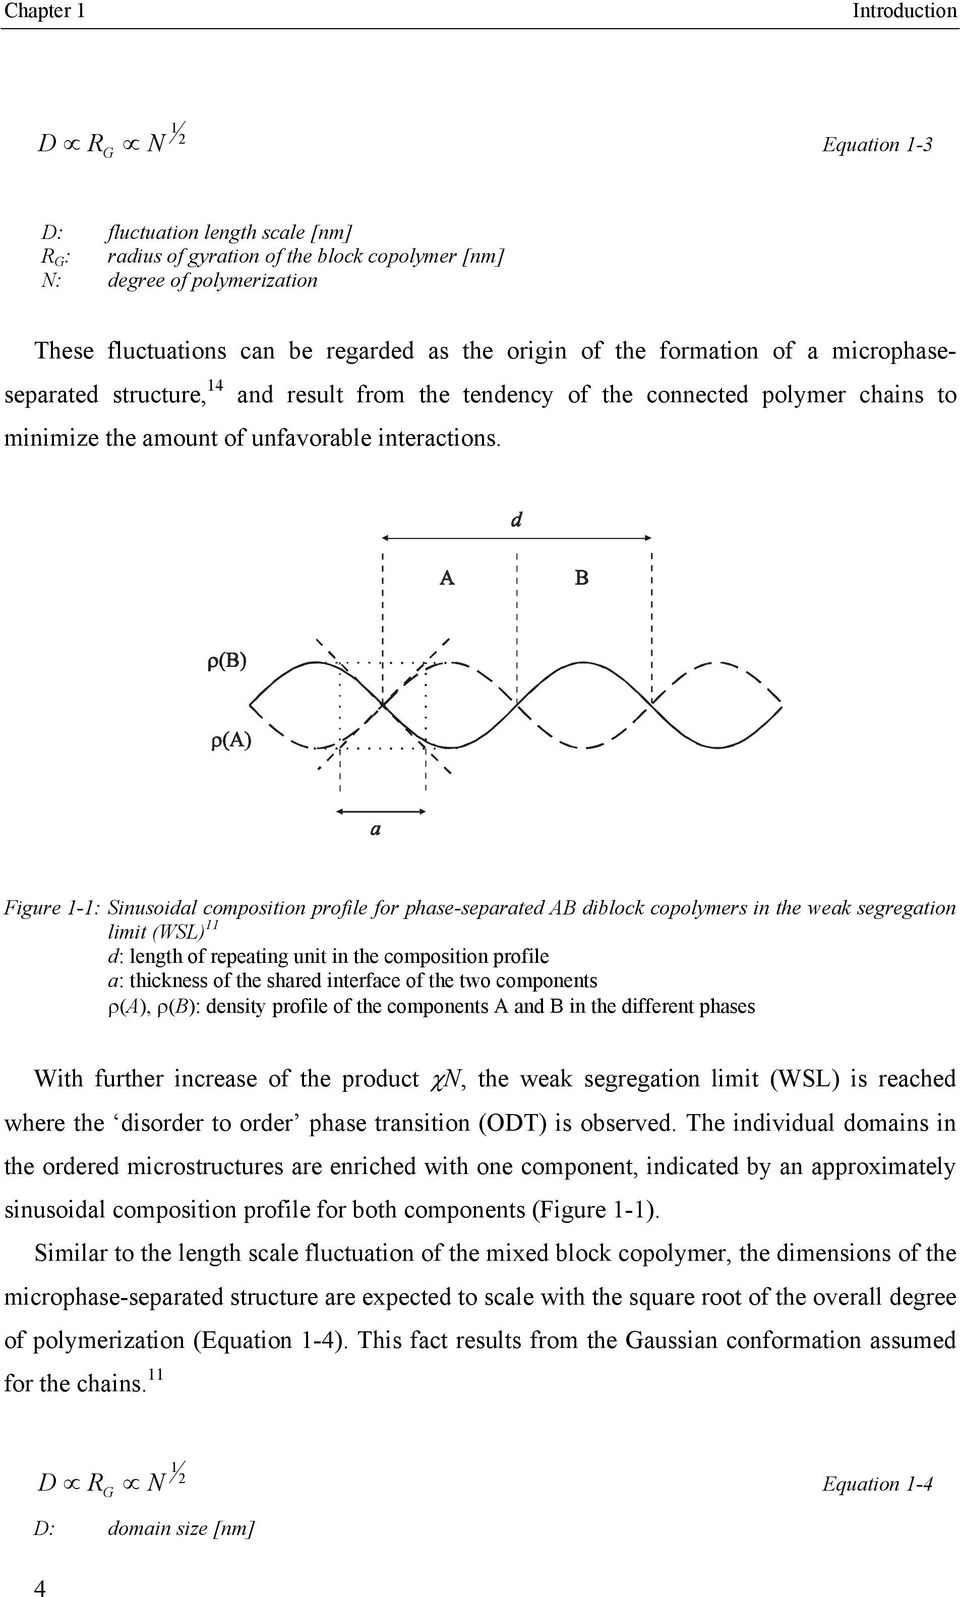 Figure 1-1: Sinusoidal composition profile for phase-separated AB diblock copolymers in the weak segregation limit (WSL) 11 d: length of repeating unit in the composition profile a: thickness of the